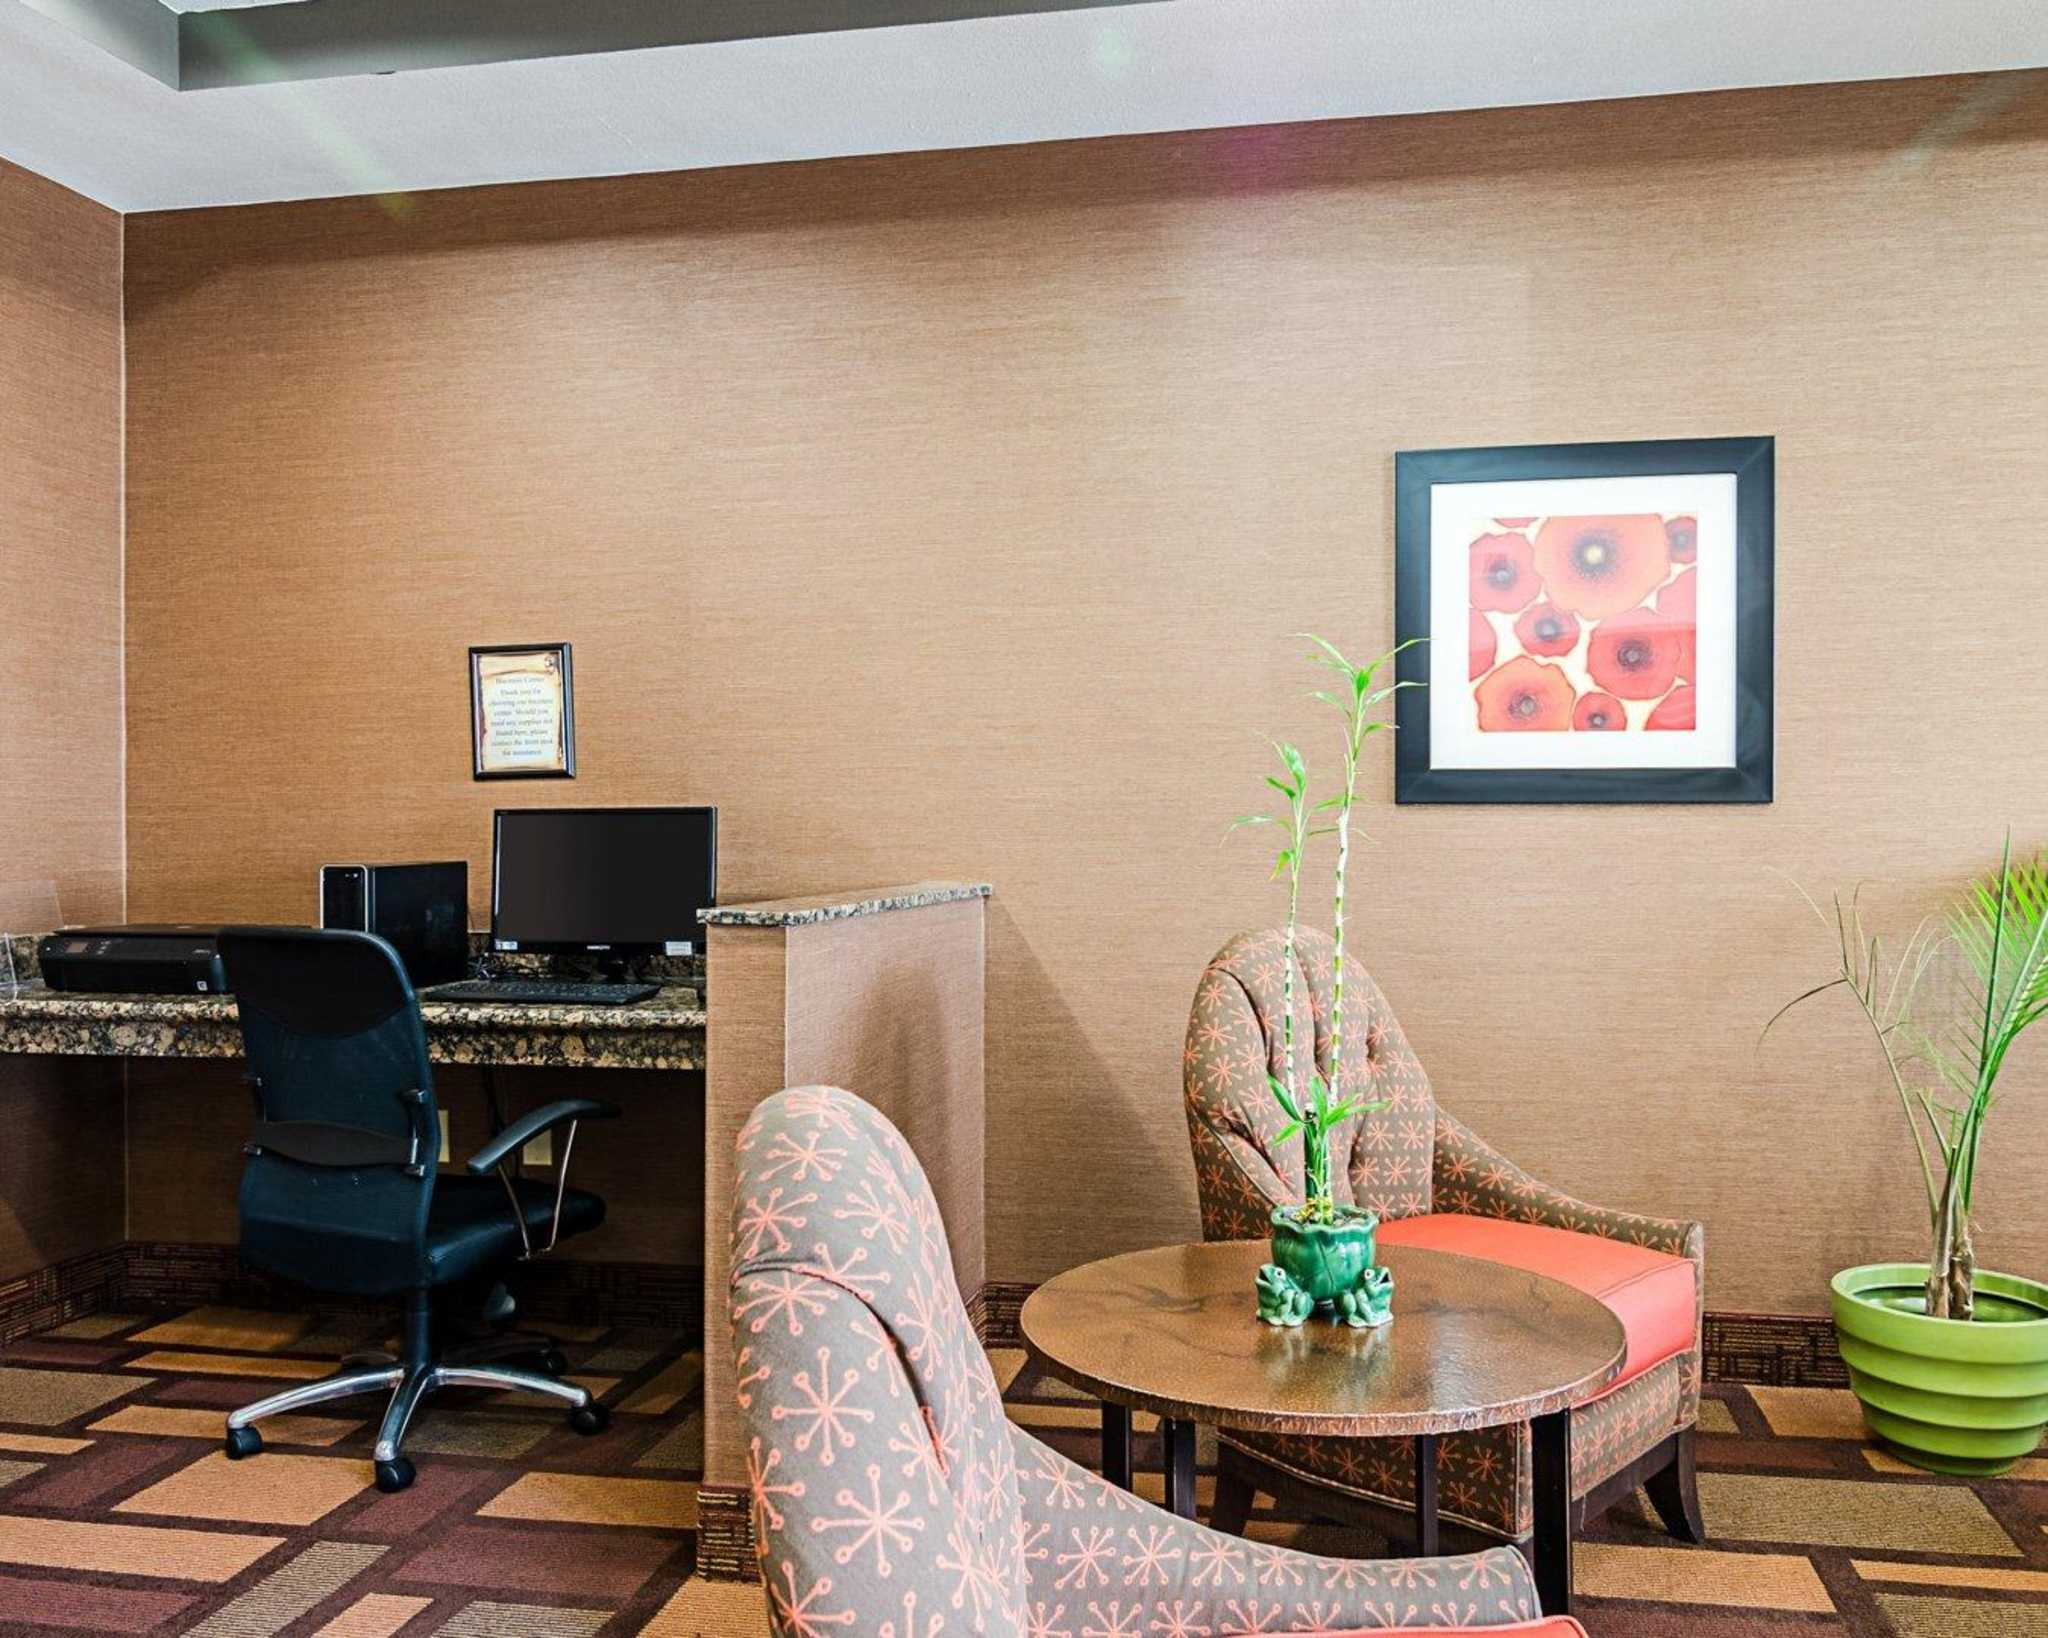 Comfort Inn & Suites Lawrence - University Area image 35